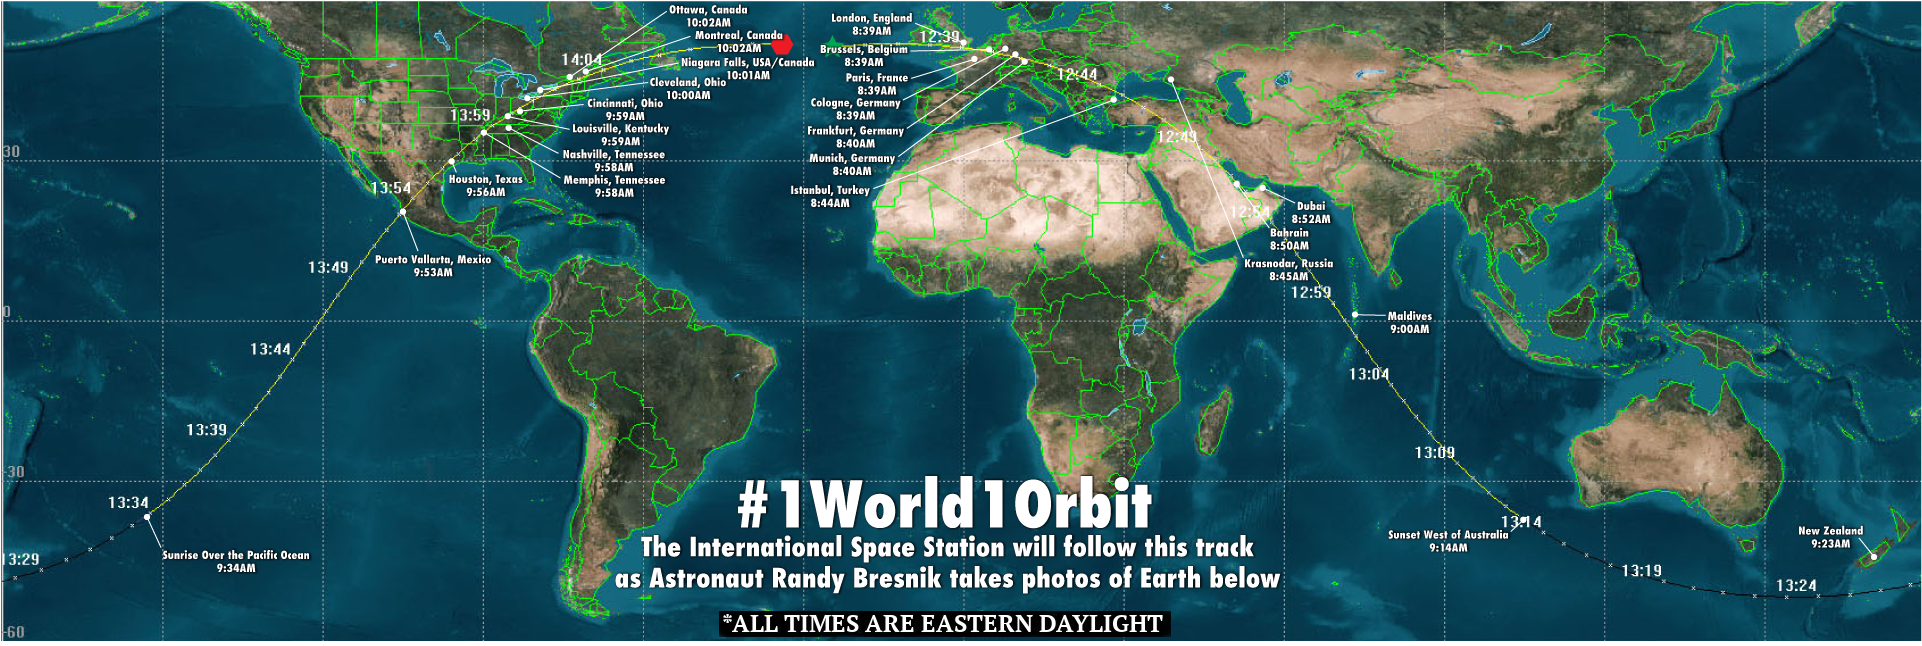 Space station crew invites public along for photo trip around earth bresnik 1world1orbit graphic gumiabroncs Choice Image